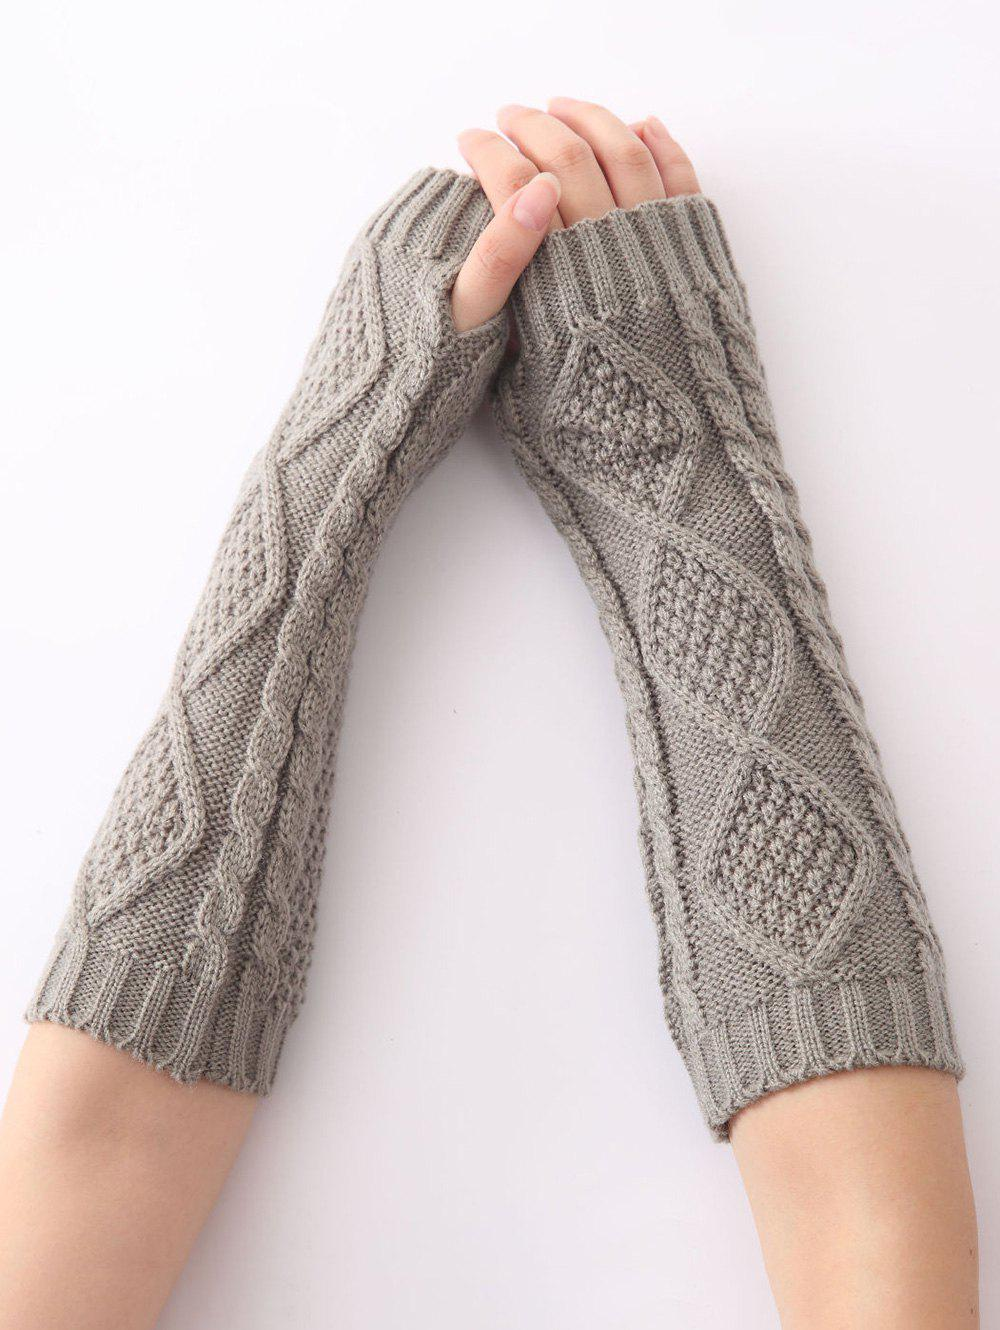 Christmas Winter Warm Diamond Hollow Out Crochet Knit Arm Warmers - LIGHT GRAY